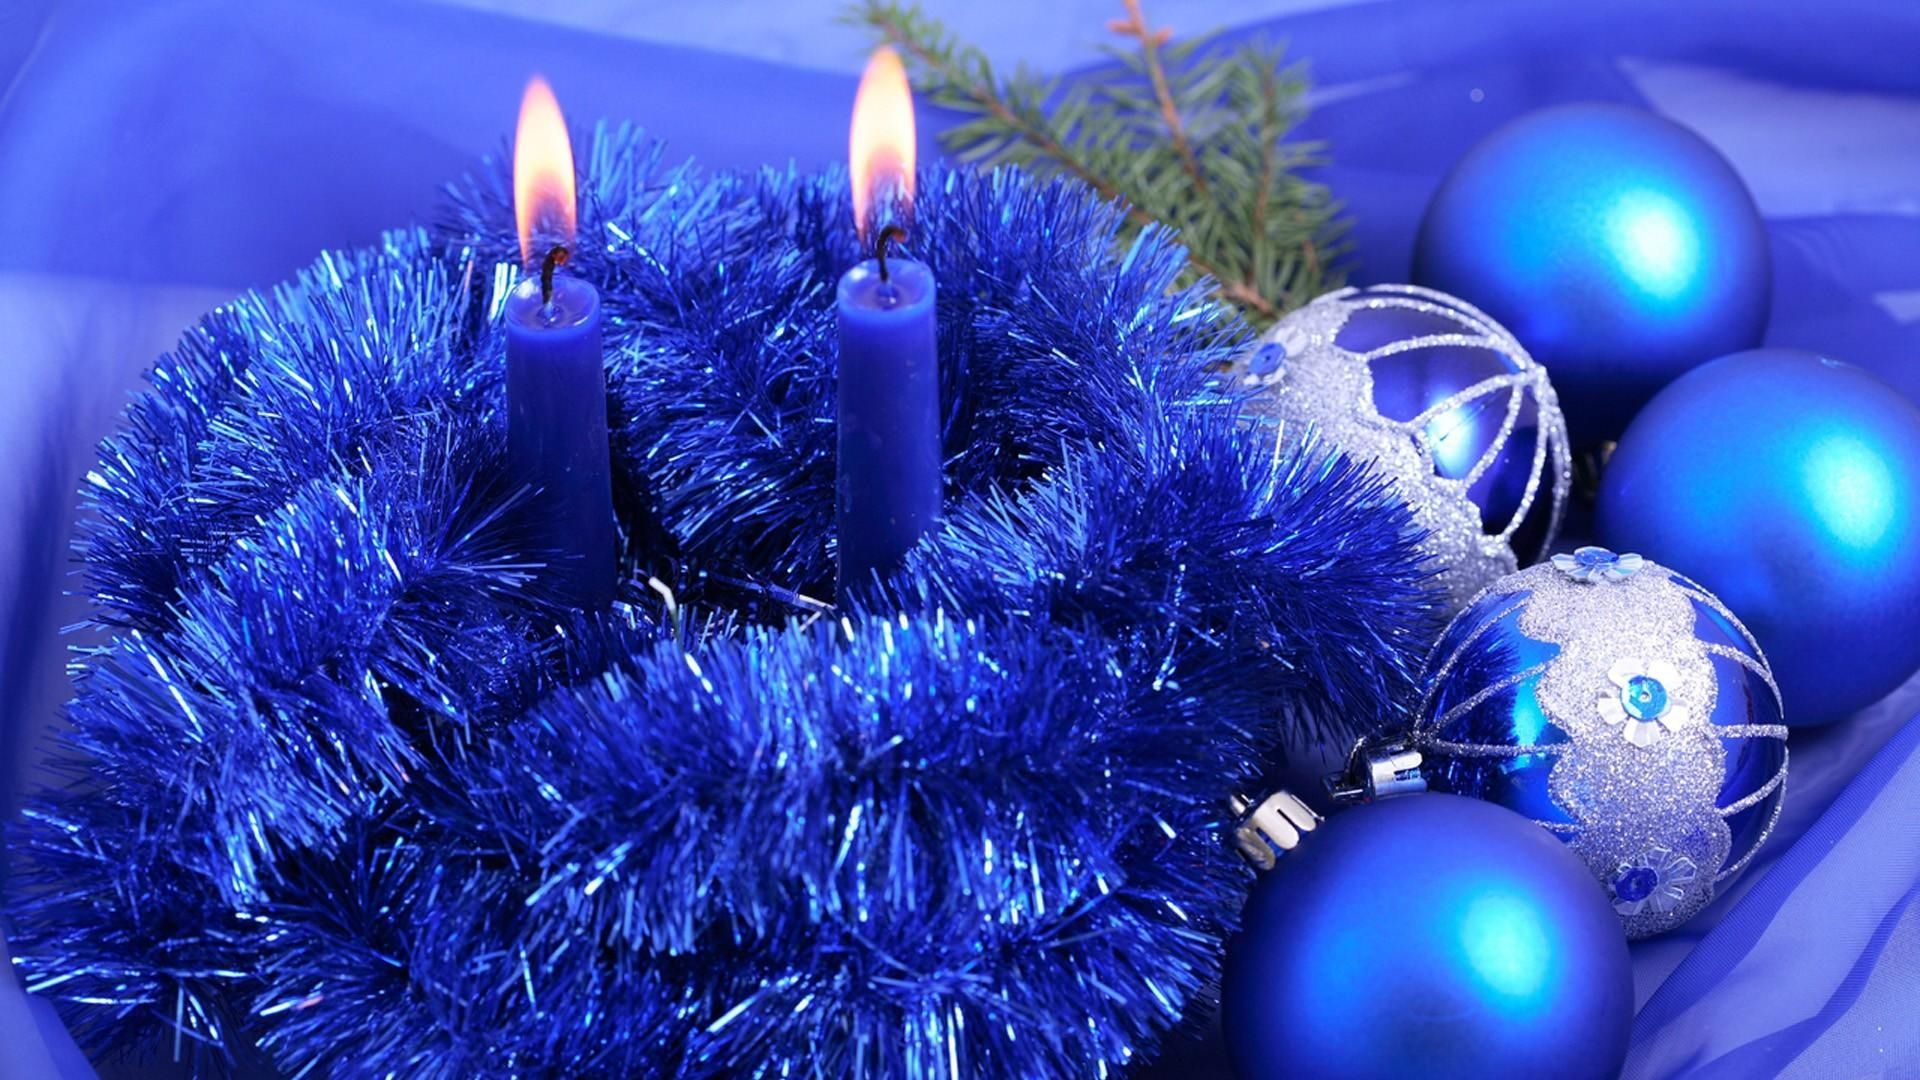 1920x1080 Wallpaper christmas decorations, candles, tinsel